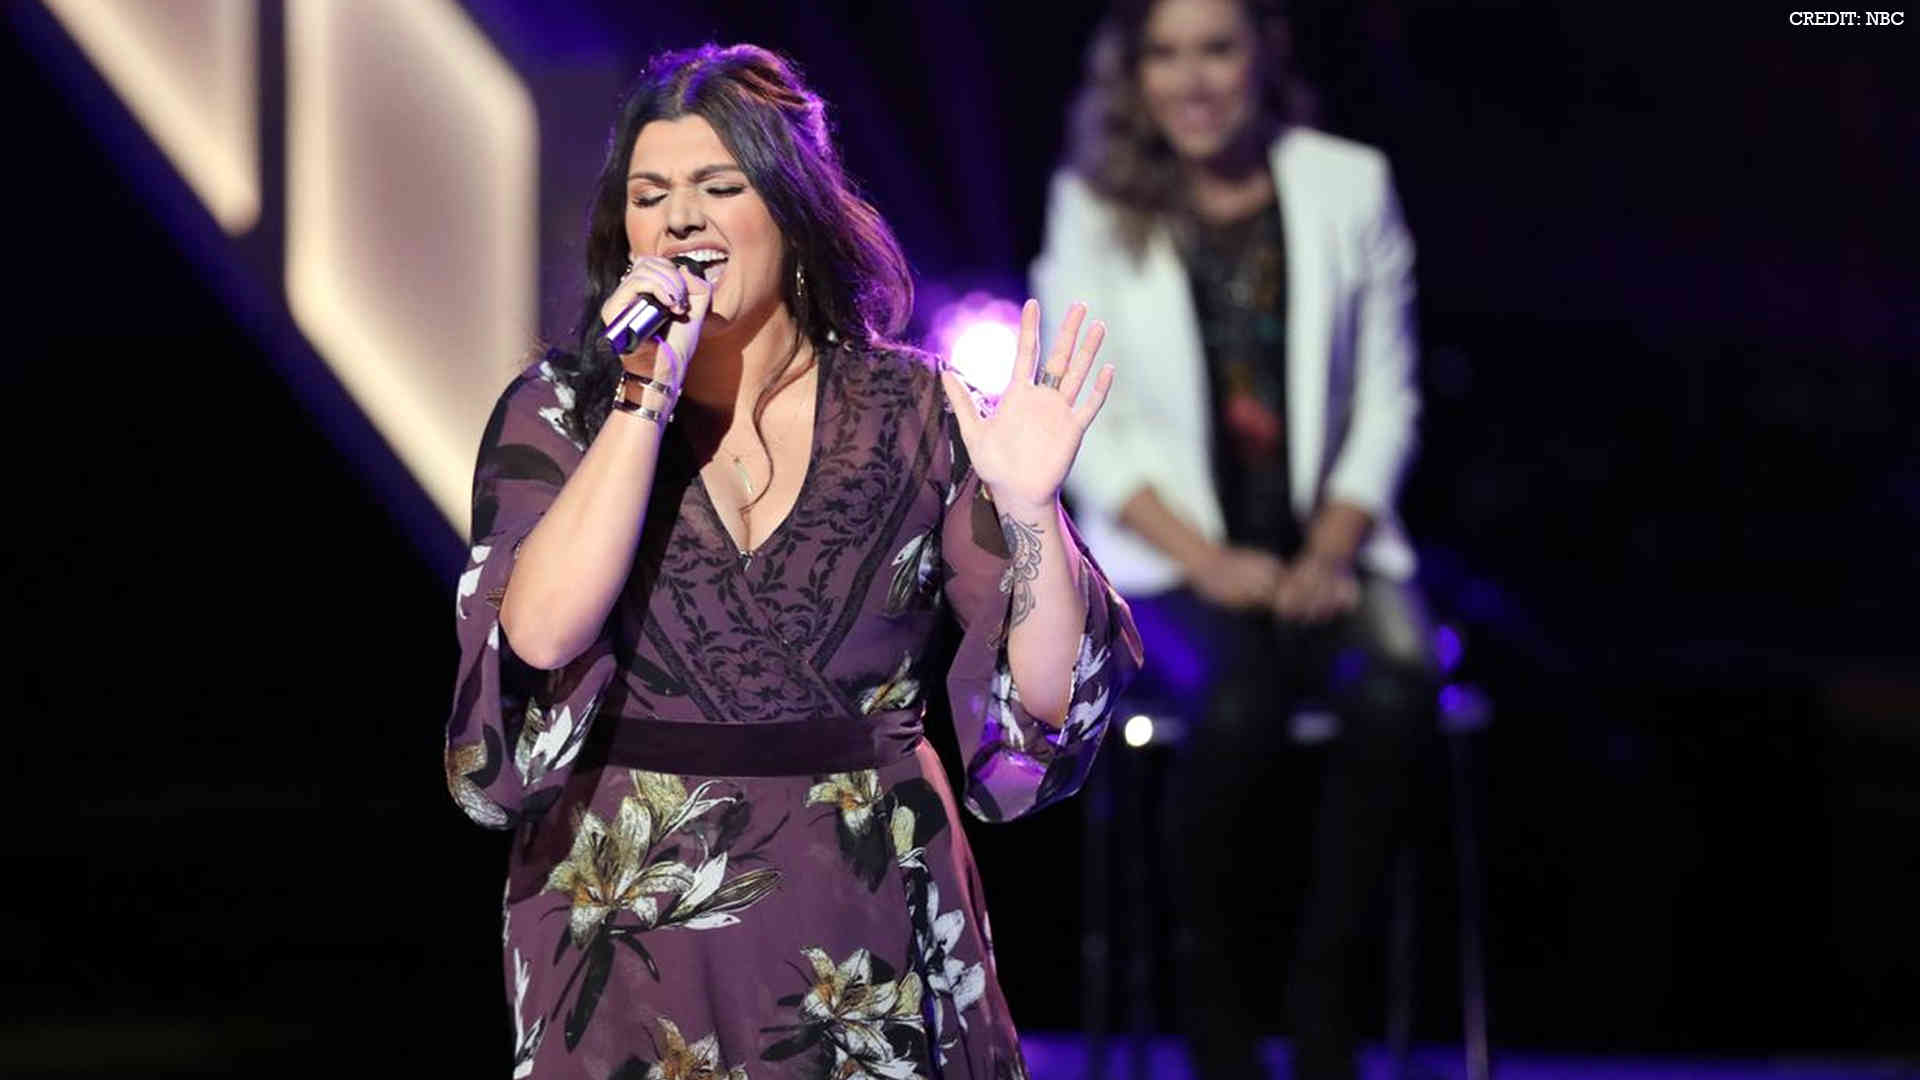 "Watch The Voice USA 2017 Knockout Mia Boostrom ""Wade in the Water"" full Performance Video 2 April 2018"